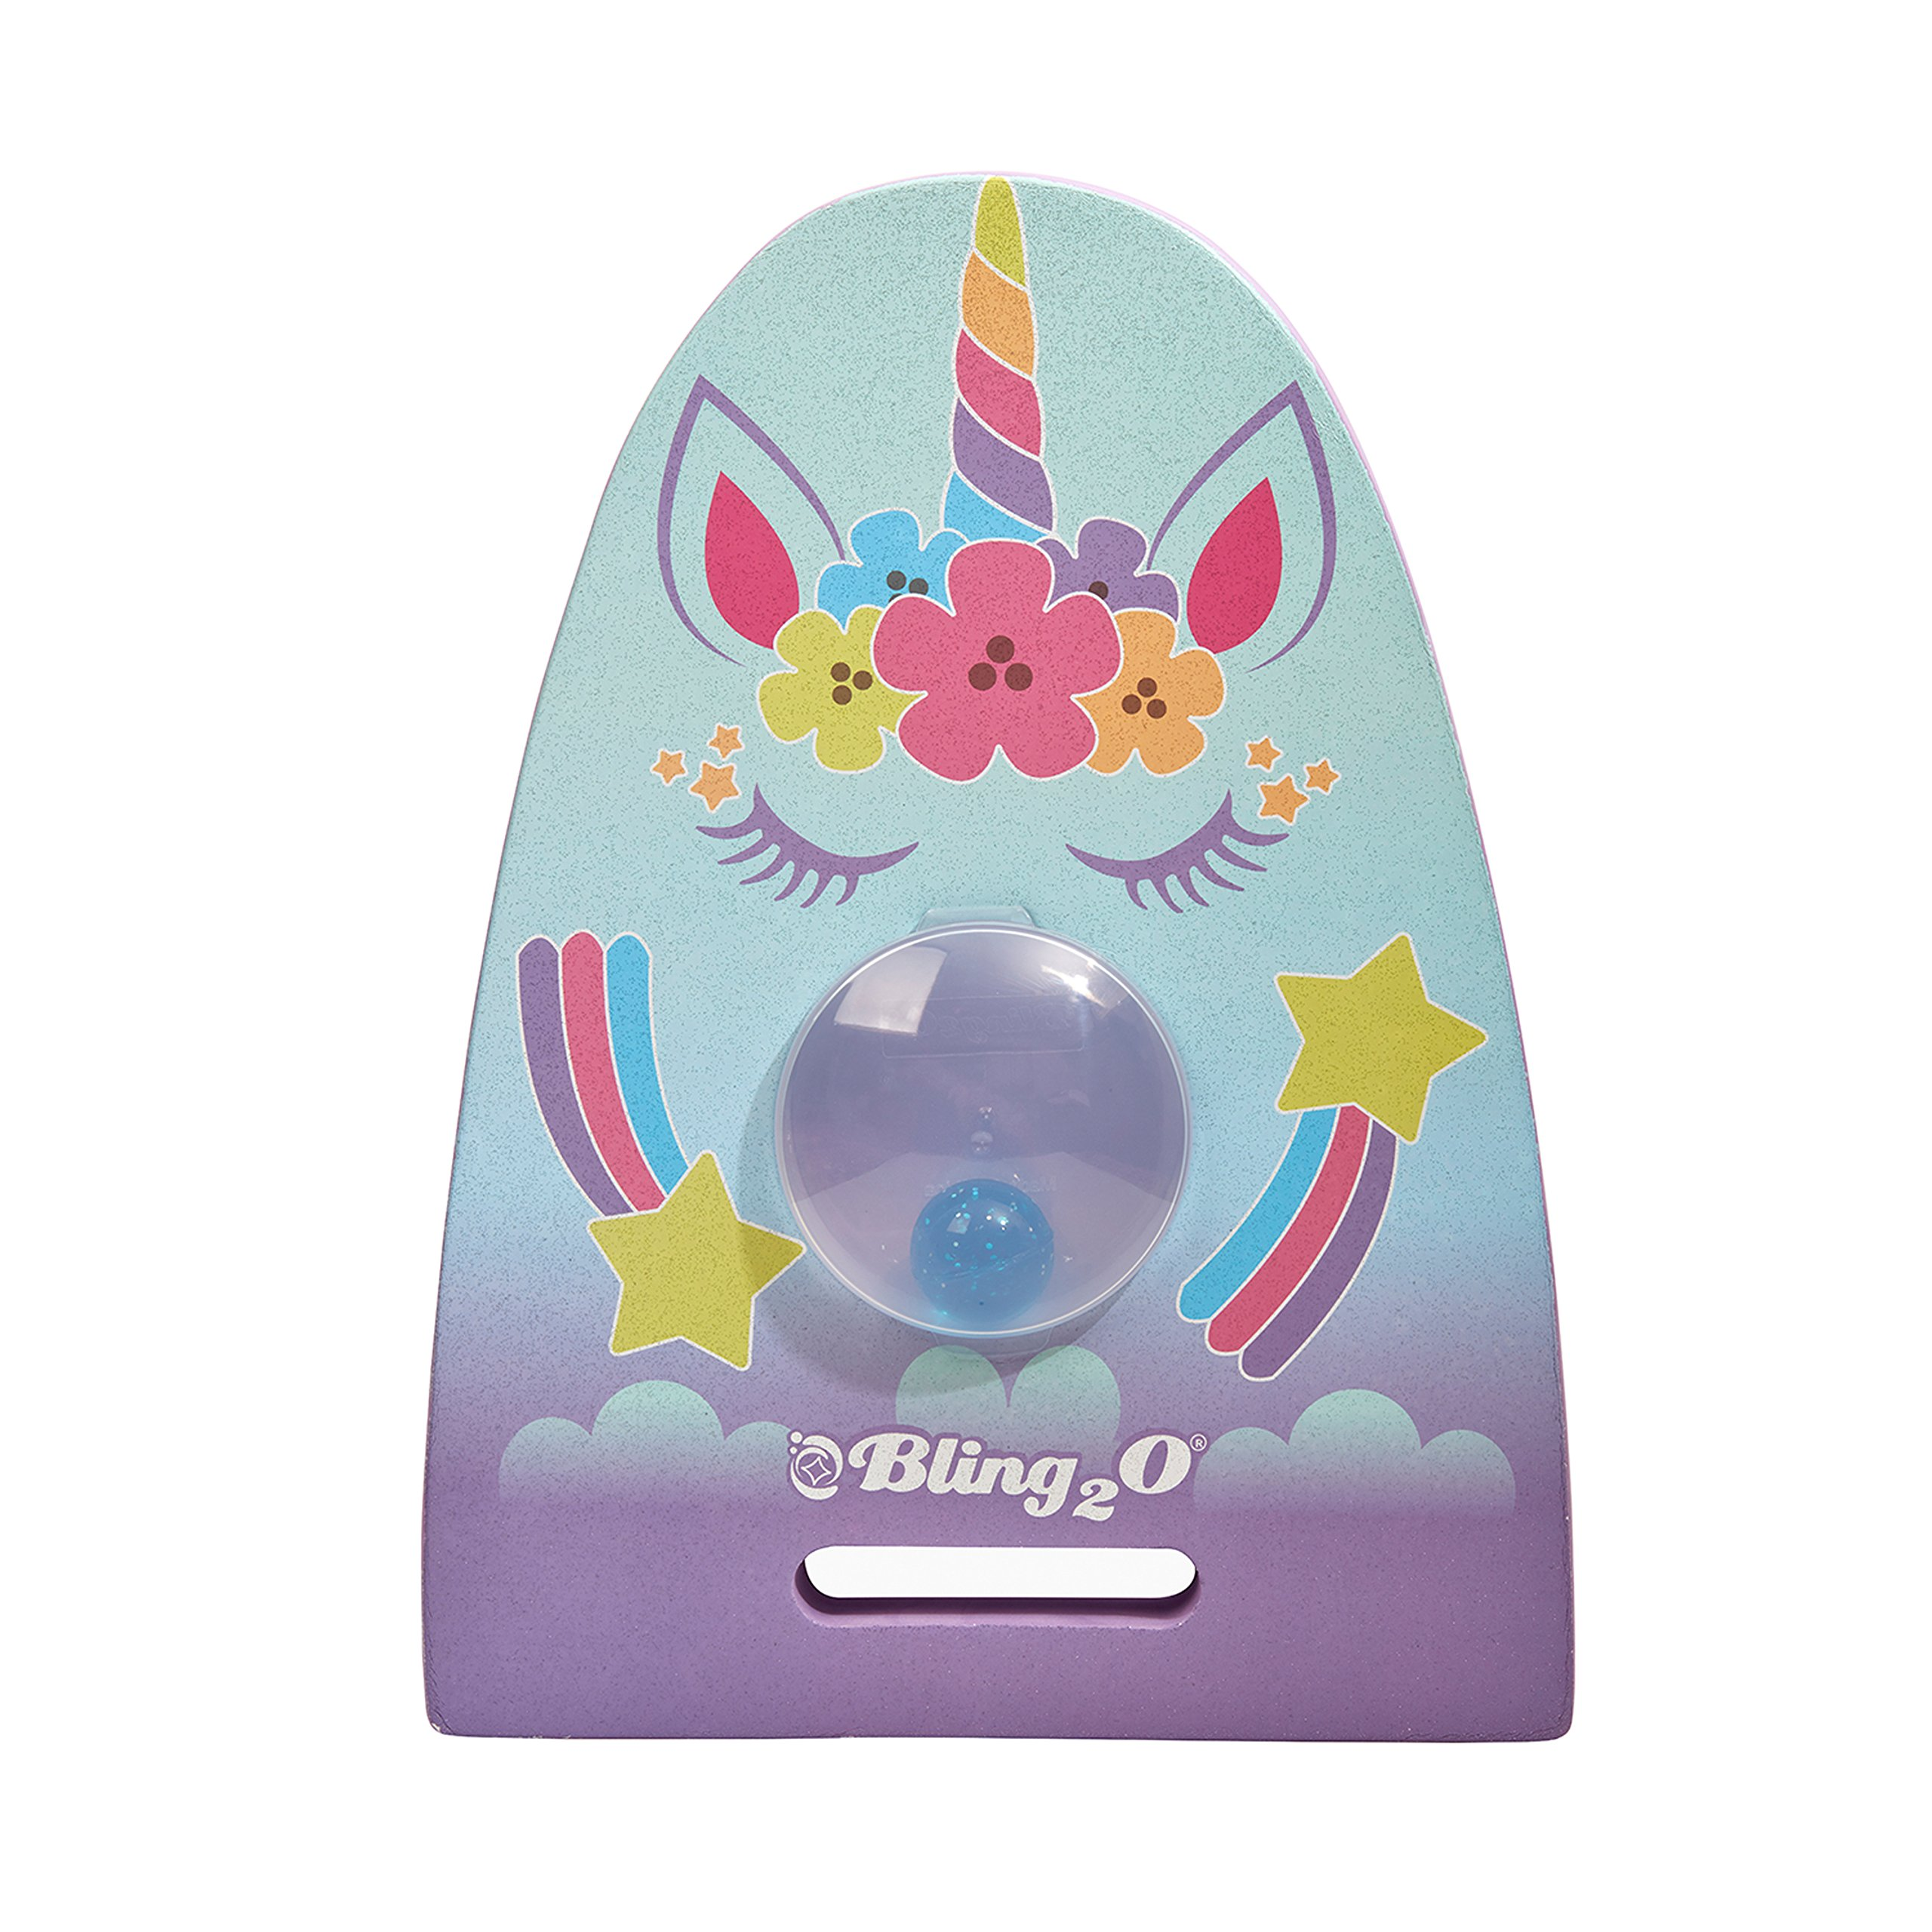 Unicorn Kickboard for Kids by Bling2O Includes Bonus Dive Toy - Great for Swim Lessons (Glitter Girl)